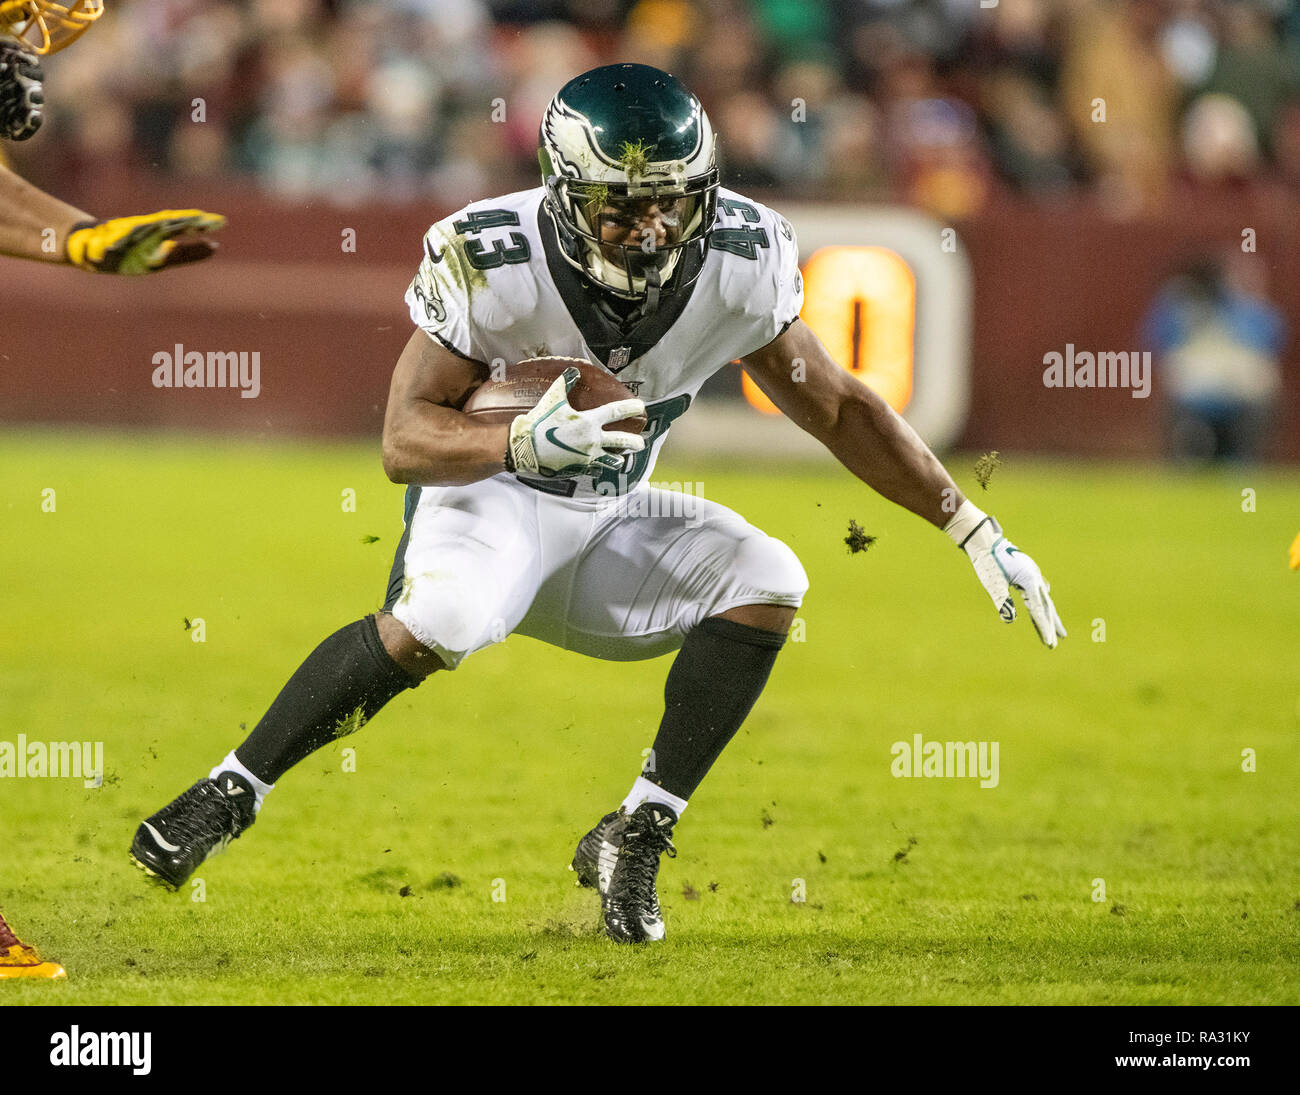 a454693f9fd Philadelphia Eagles running back Darren Sproles (43) carries the ball in  the second quarter